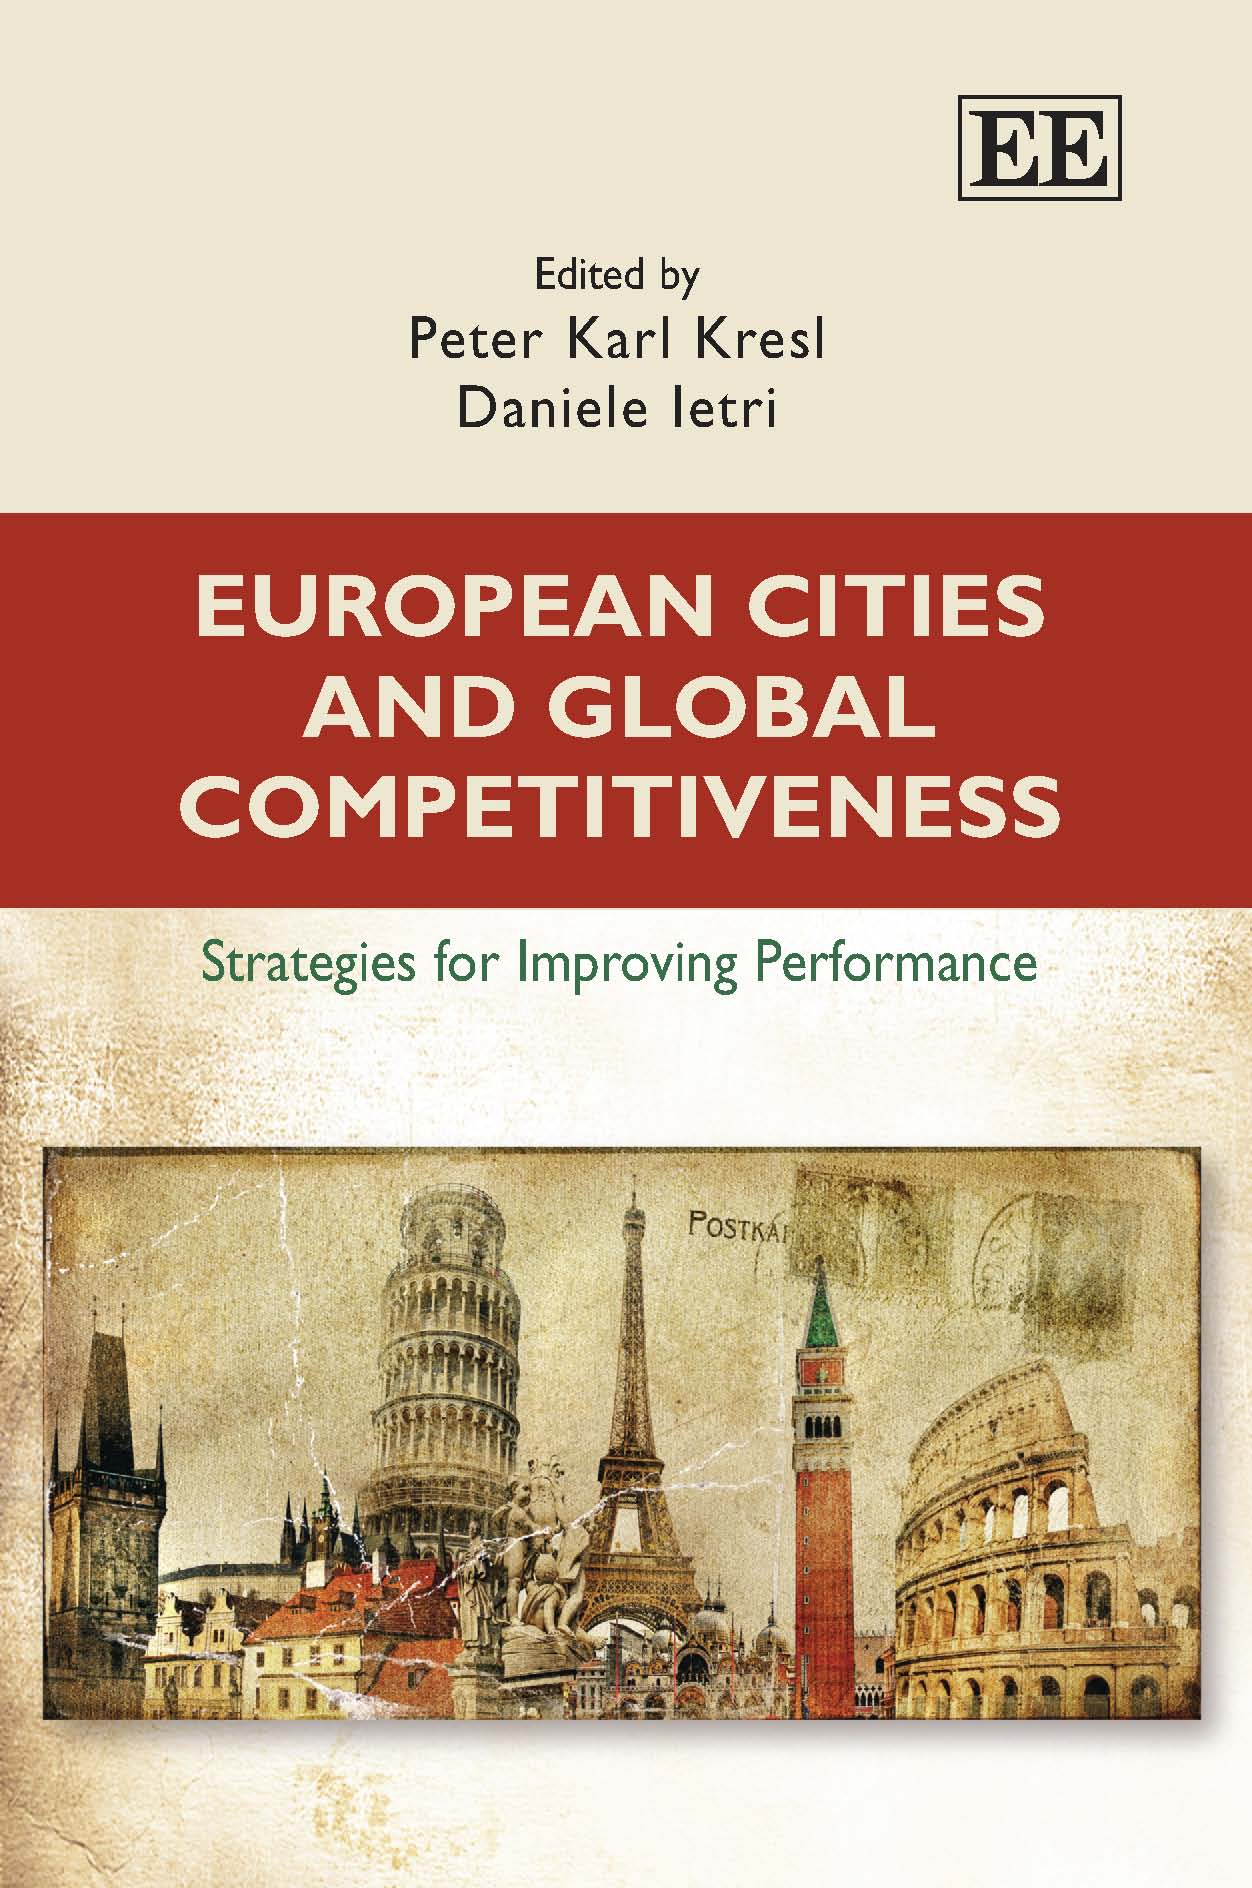 Download Ebook European Cities and Global Competitiveness by Peter Karl Kresl Pdf